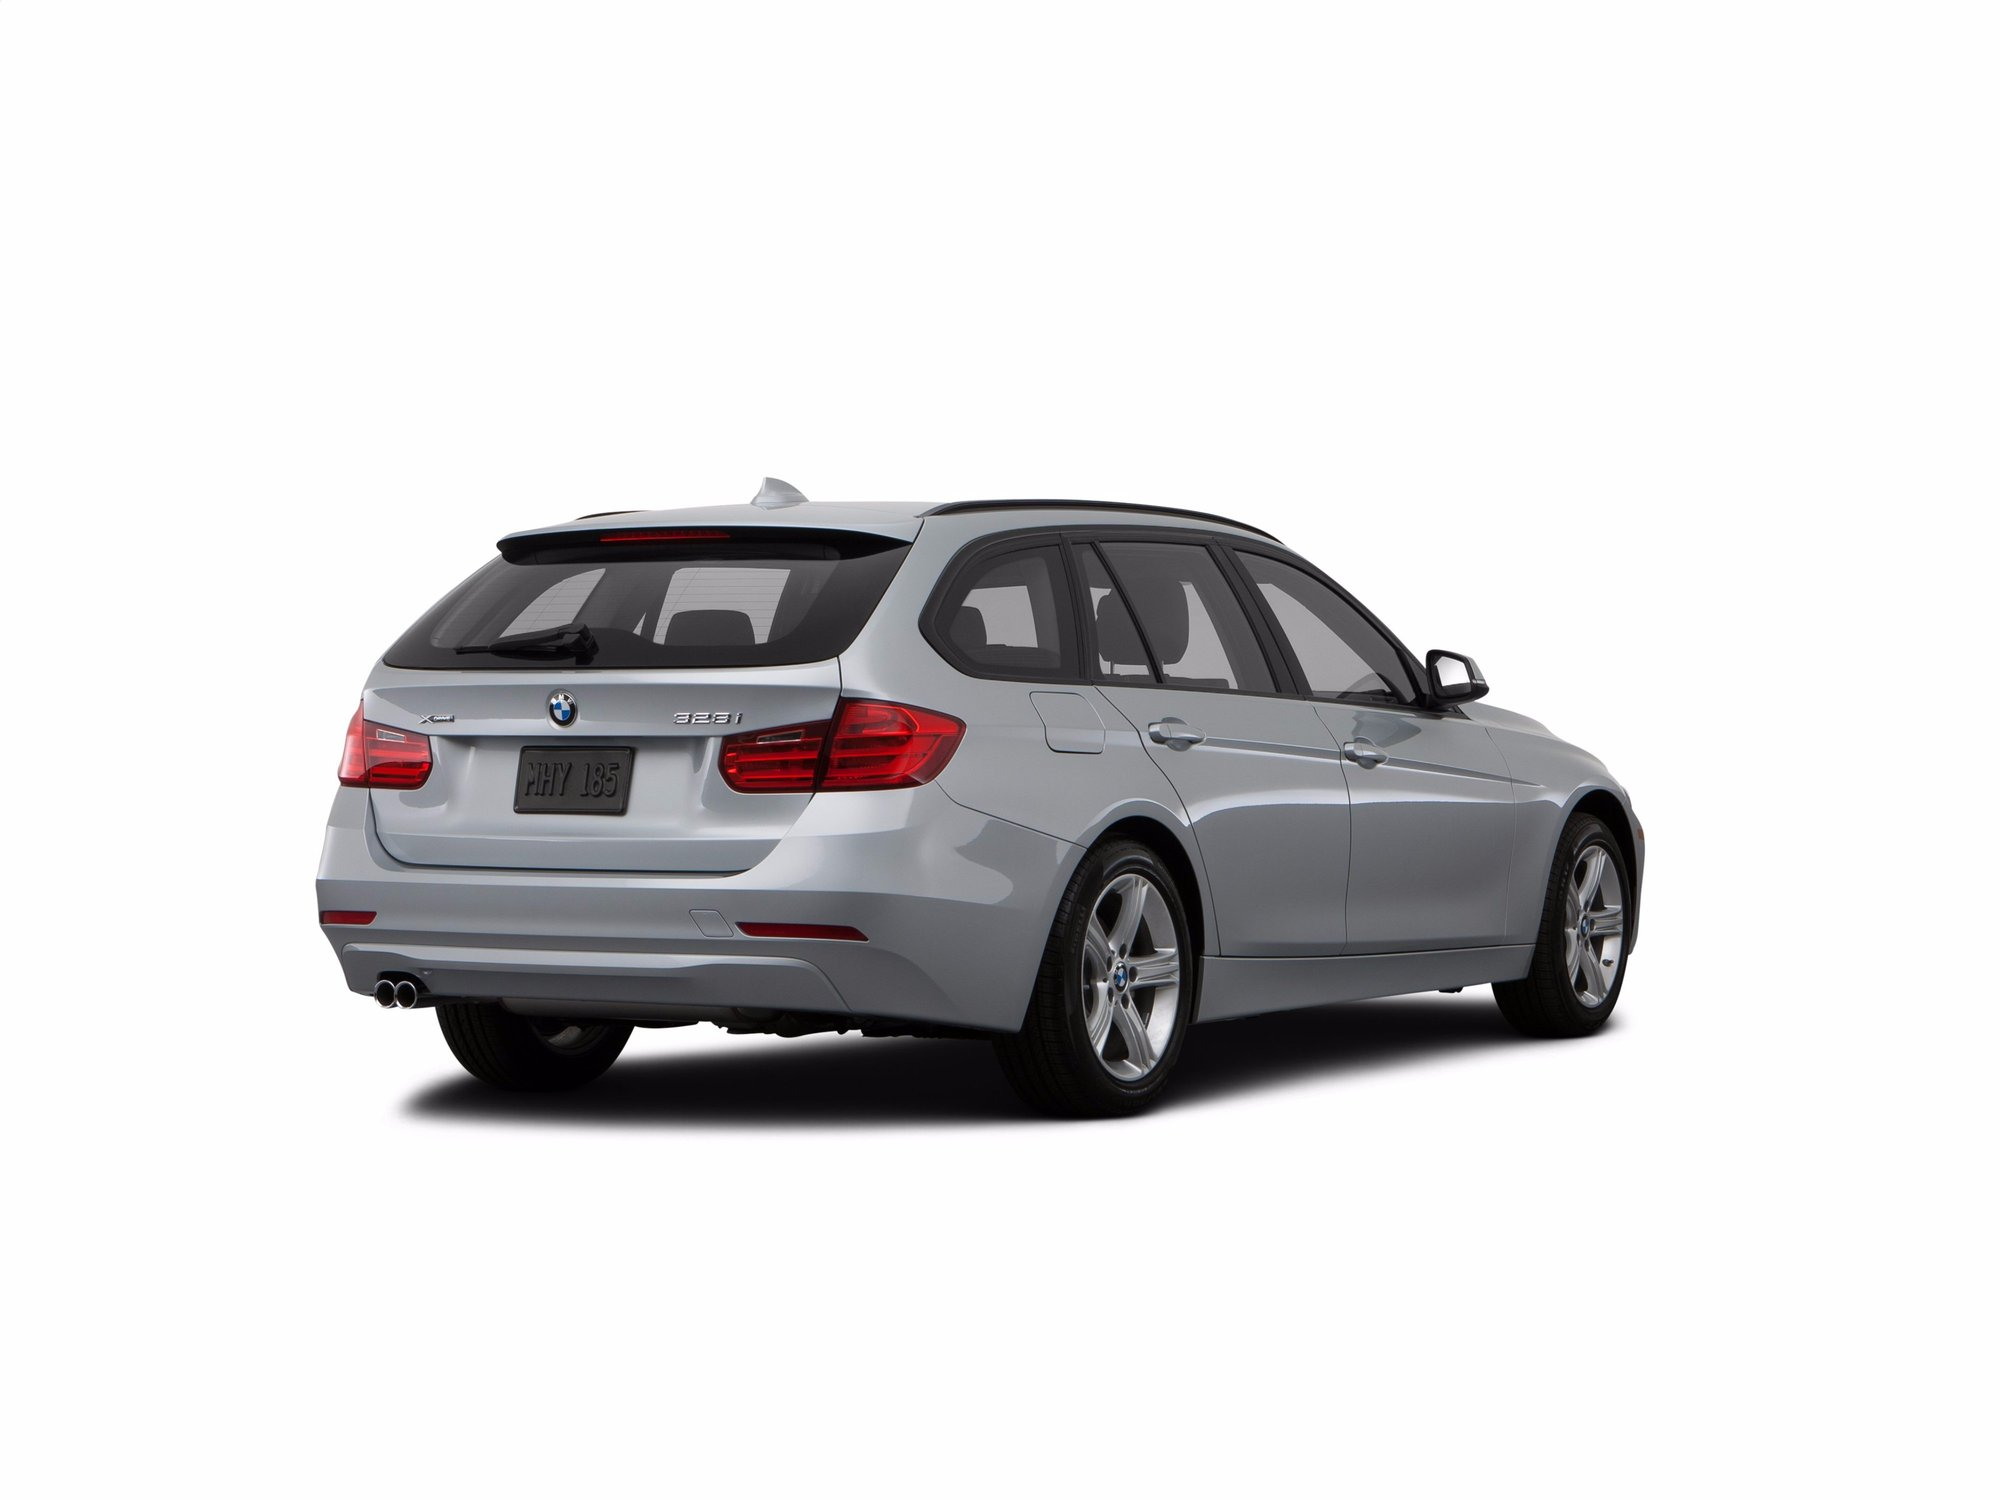 Bmw X5 Trailer Hitch Wiring Harness Installation from static-assets.imageservice.cloud